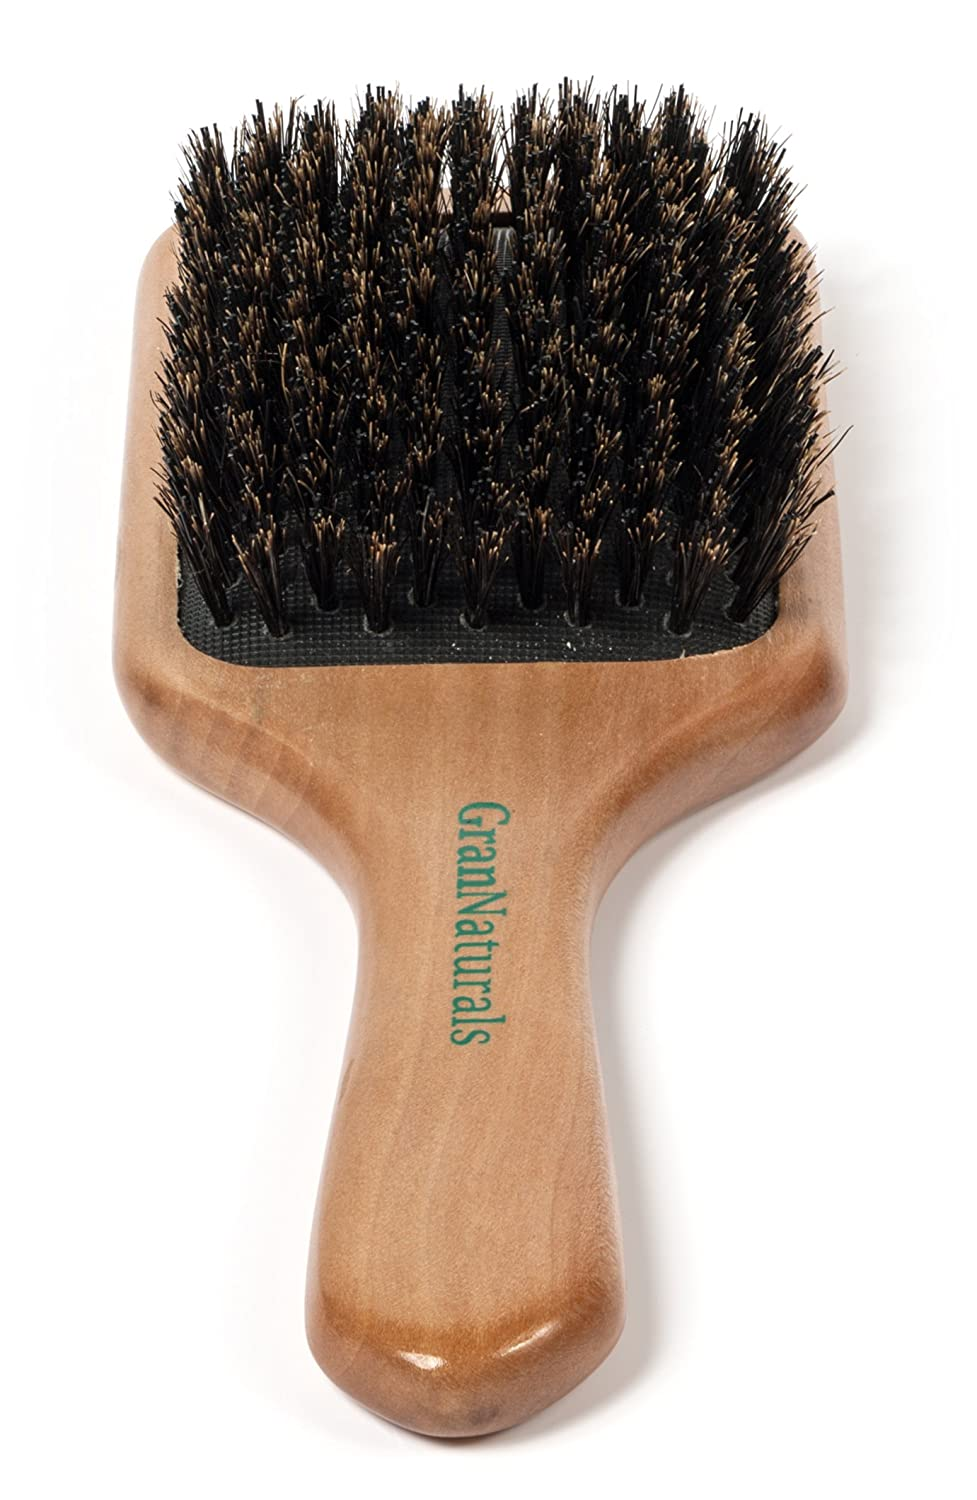 GranNaturals Boar Bristle Hair Brush for Women and Men - Natural Wooden Large Flat Square Paddle Hairbrush - For Thick, Fine, Thin, Wavy, Straight, Long, or Short Hair